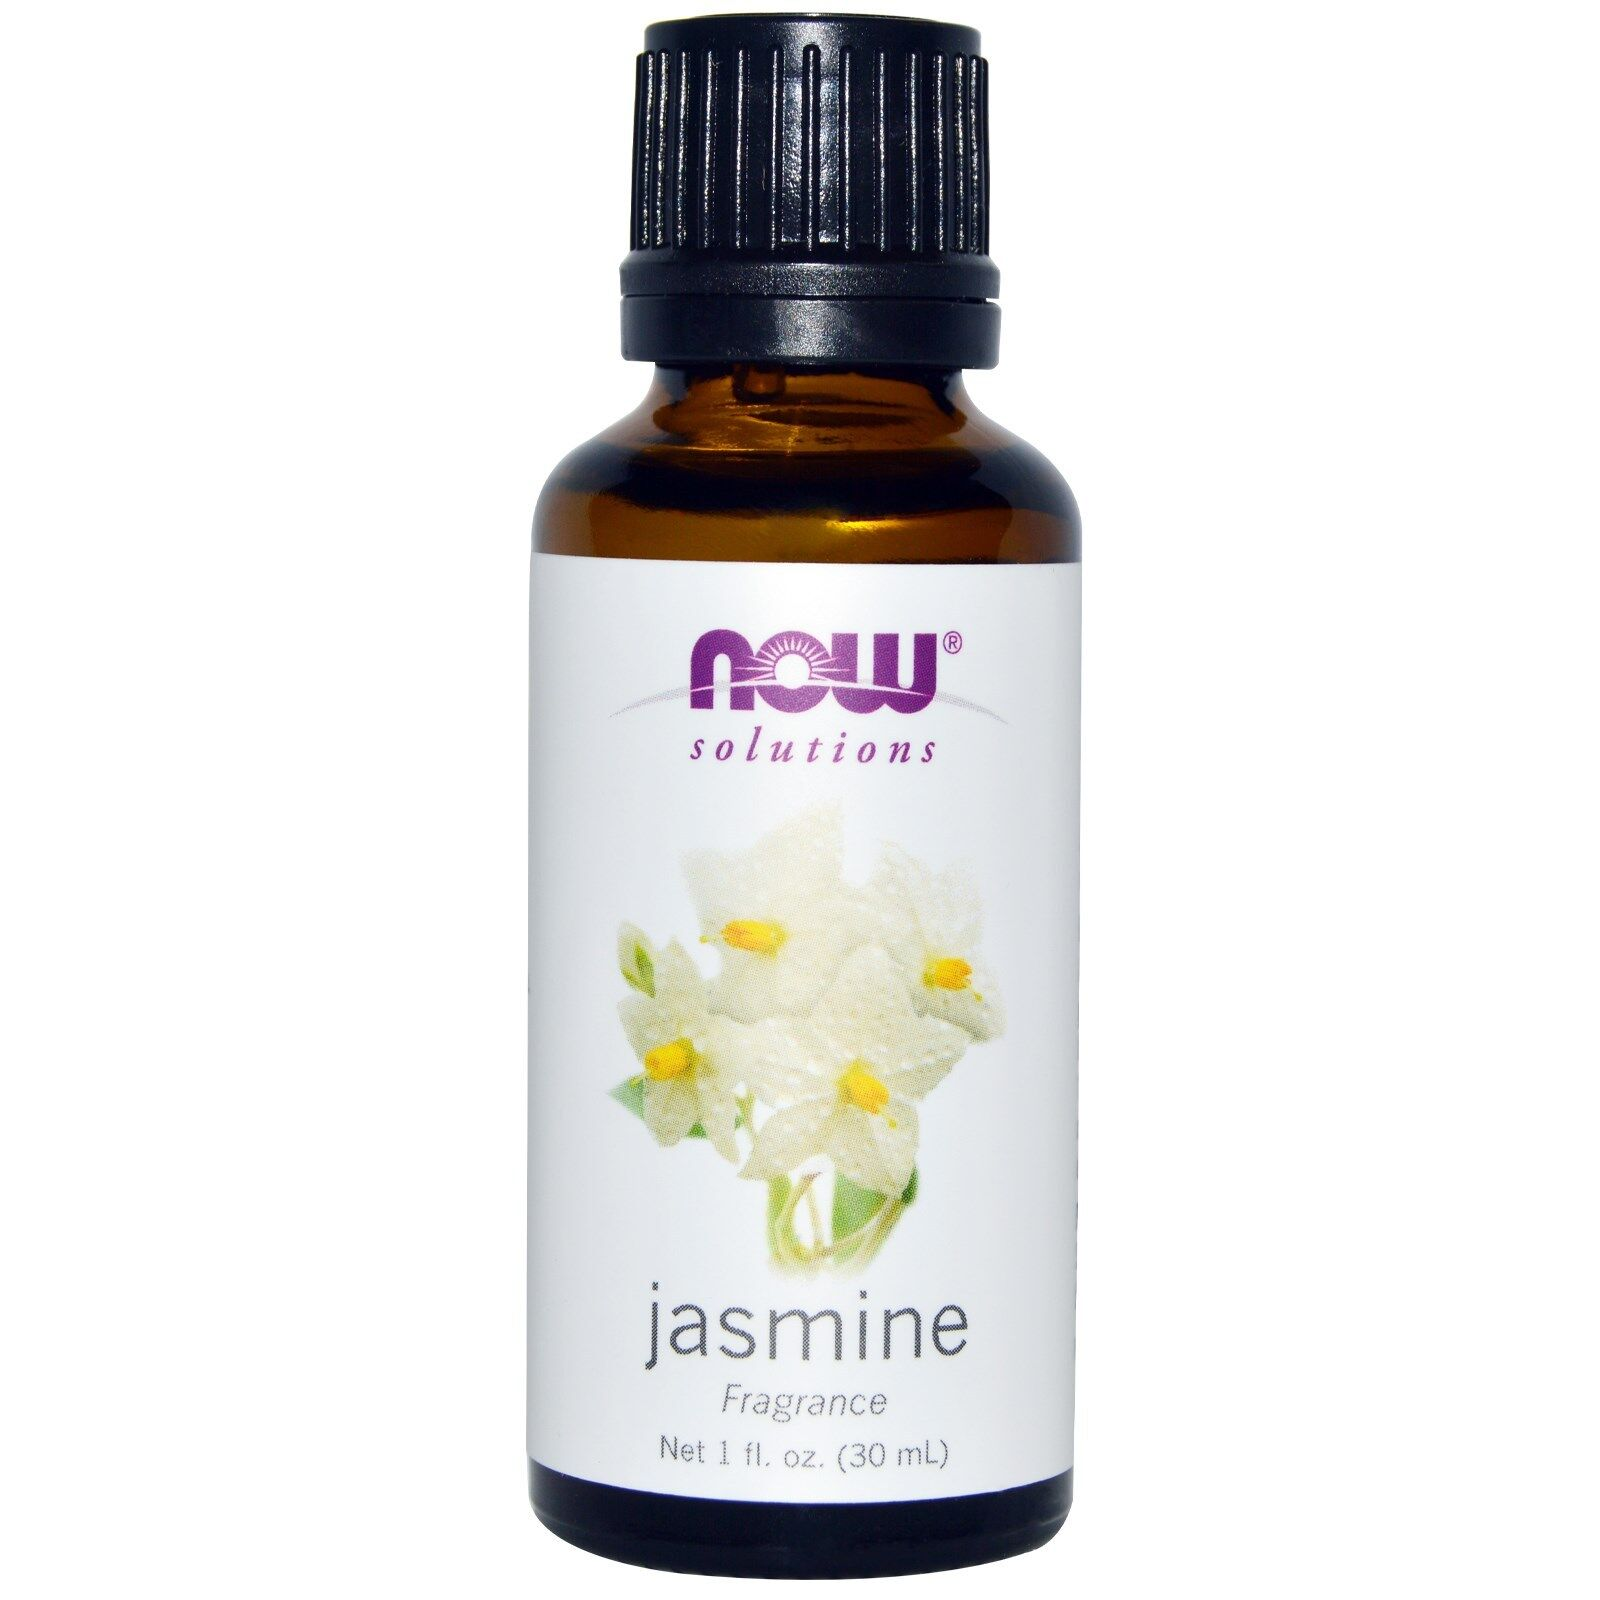 NOW Foods 1 oz Essential Oils and Blend Oils - FREE SHIPPING! Jasmine Fragrance